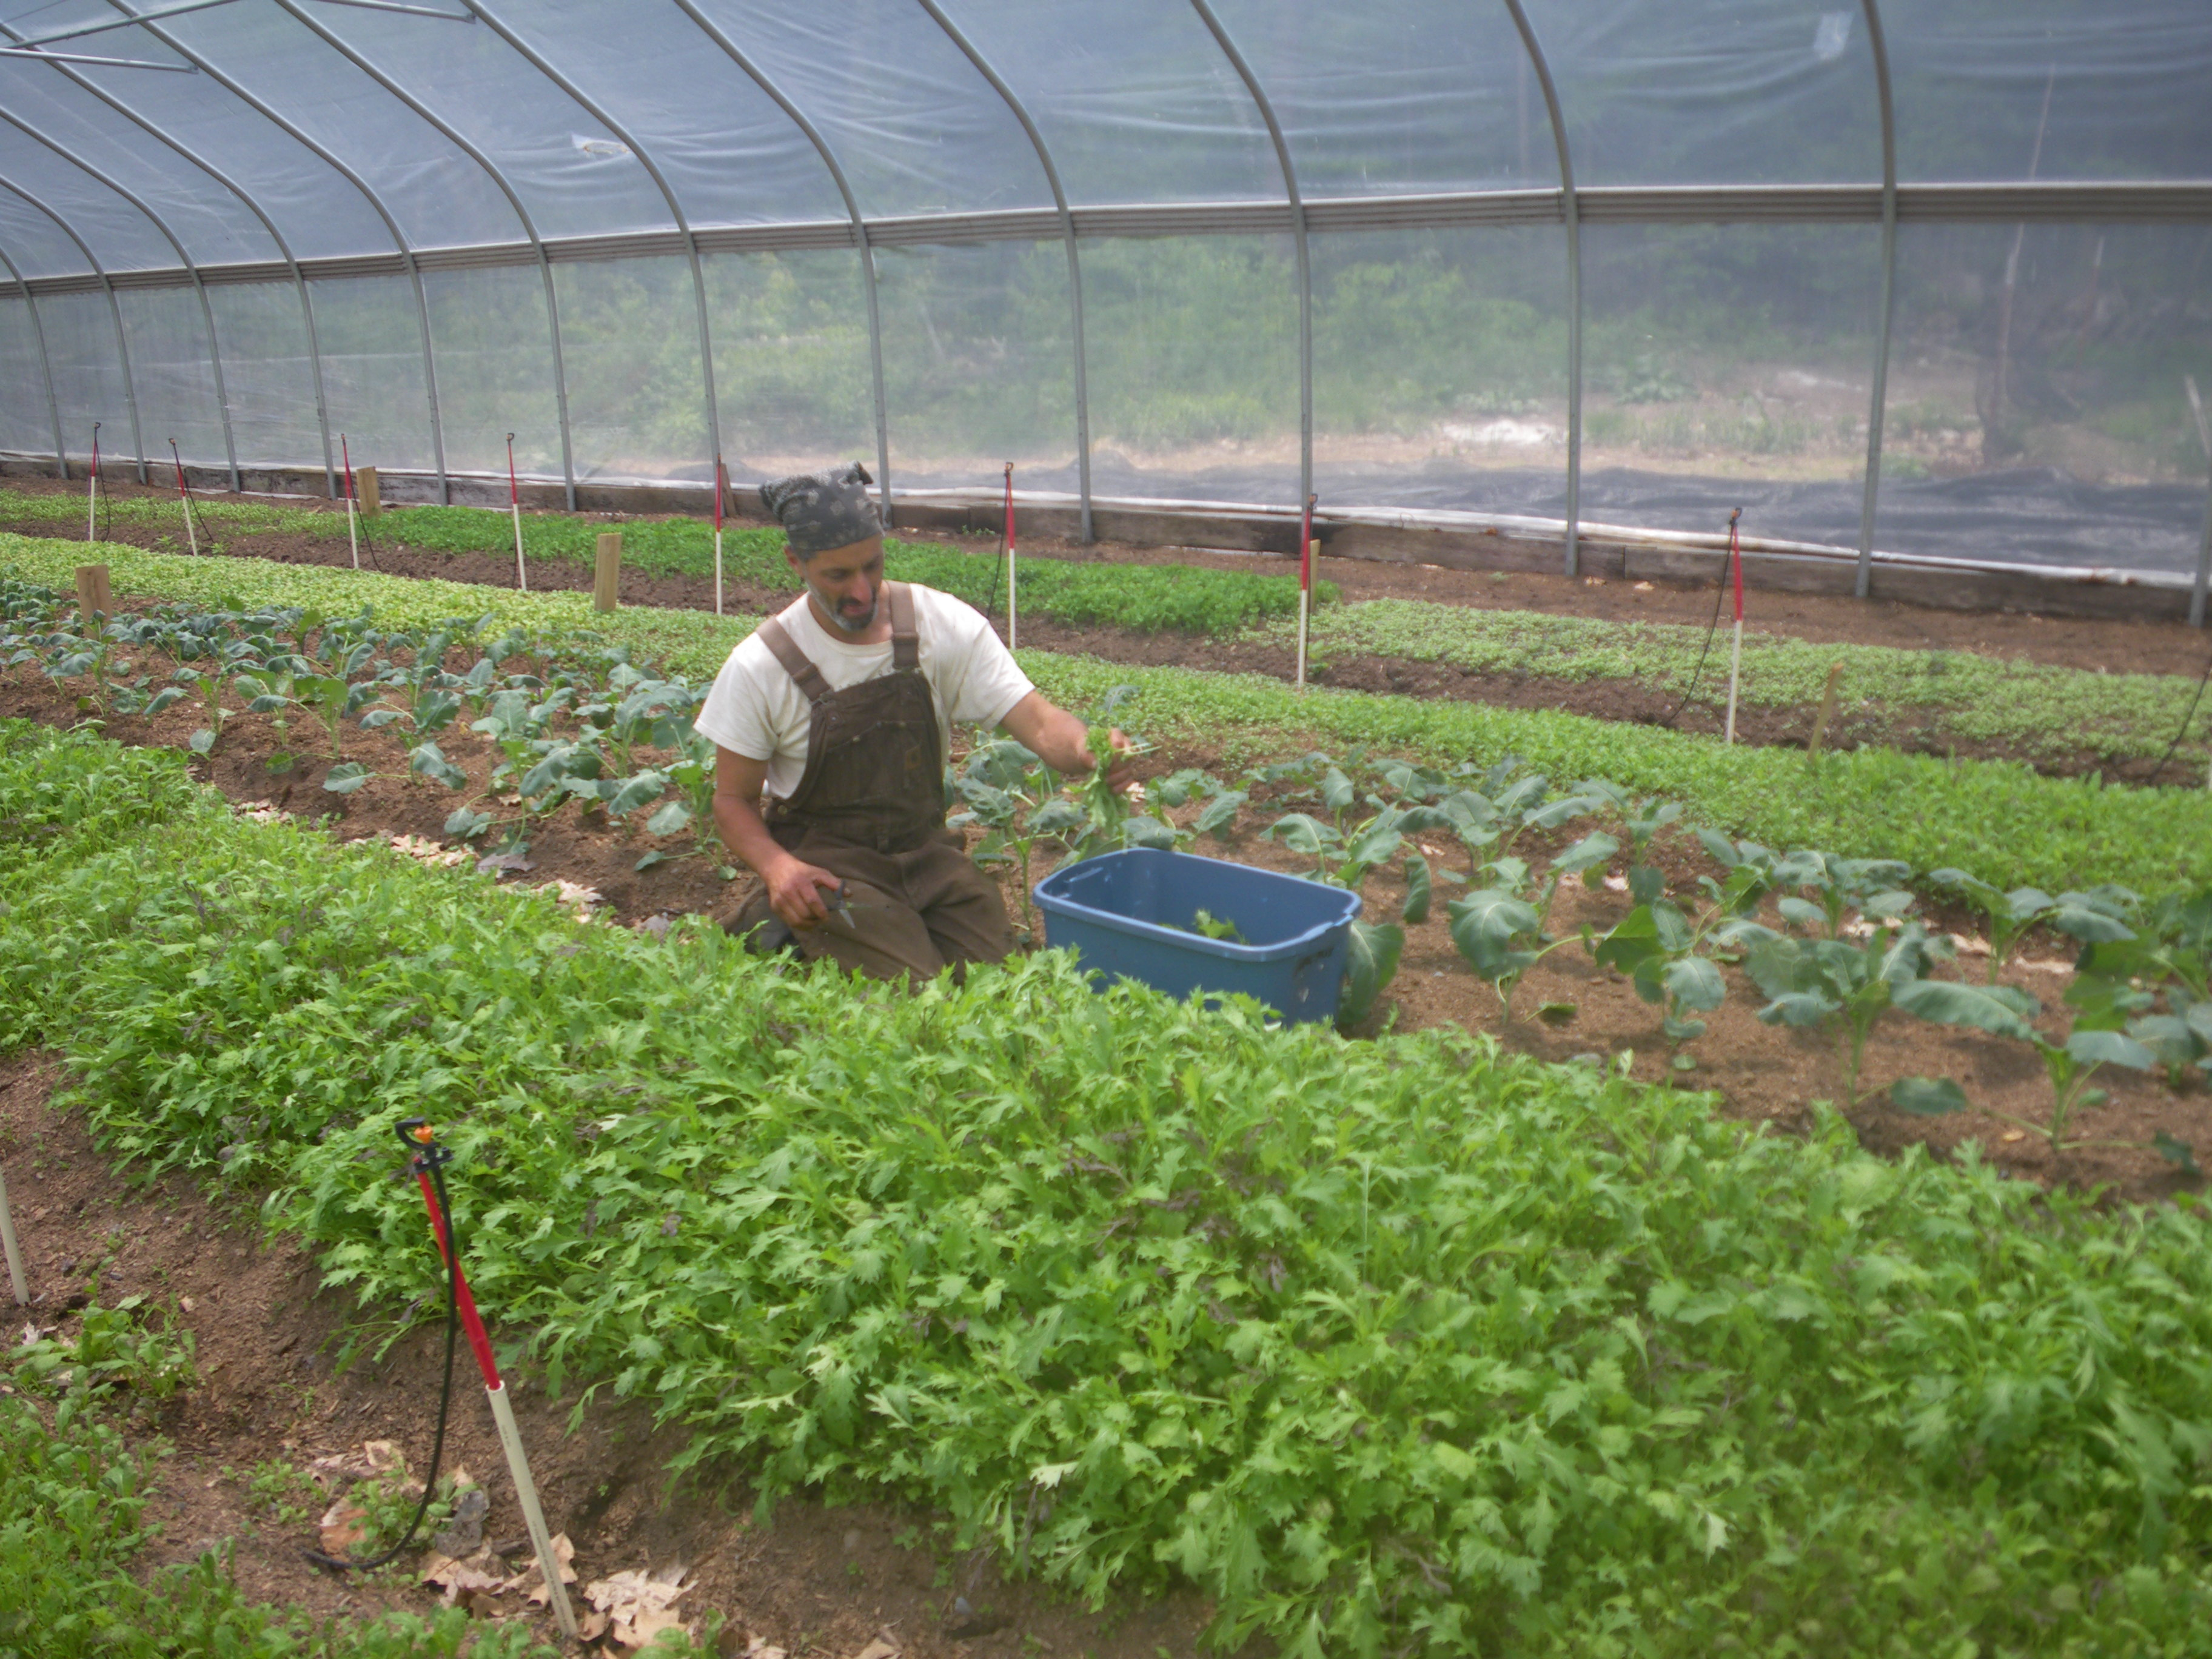 how are farmers growing more crops Increased consumption of healthy foods would lead us farmers to grow more of  these foods and less of the commodity crops that currently dominate us.